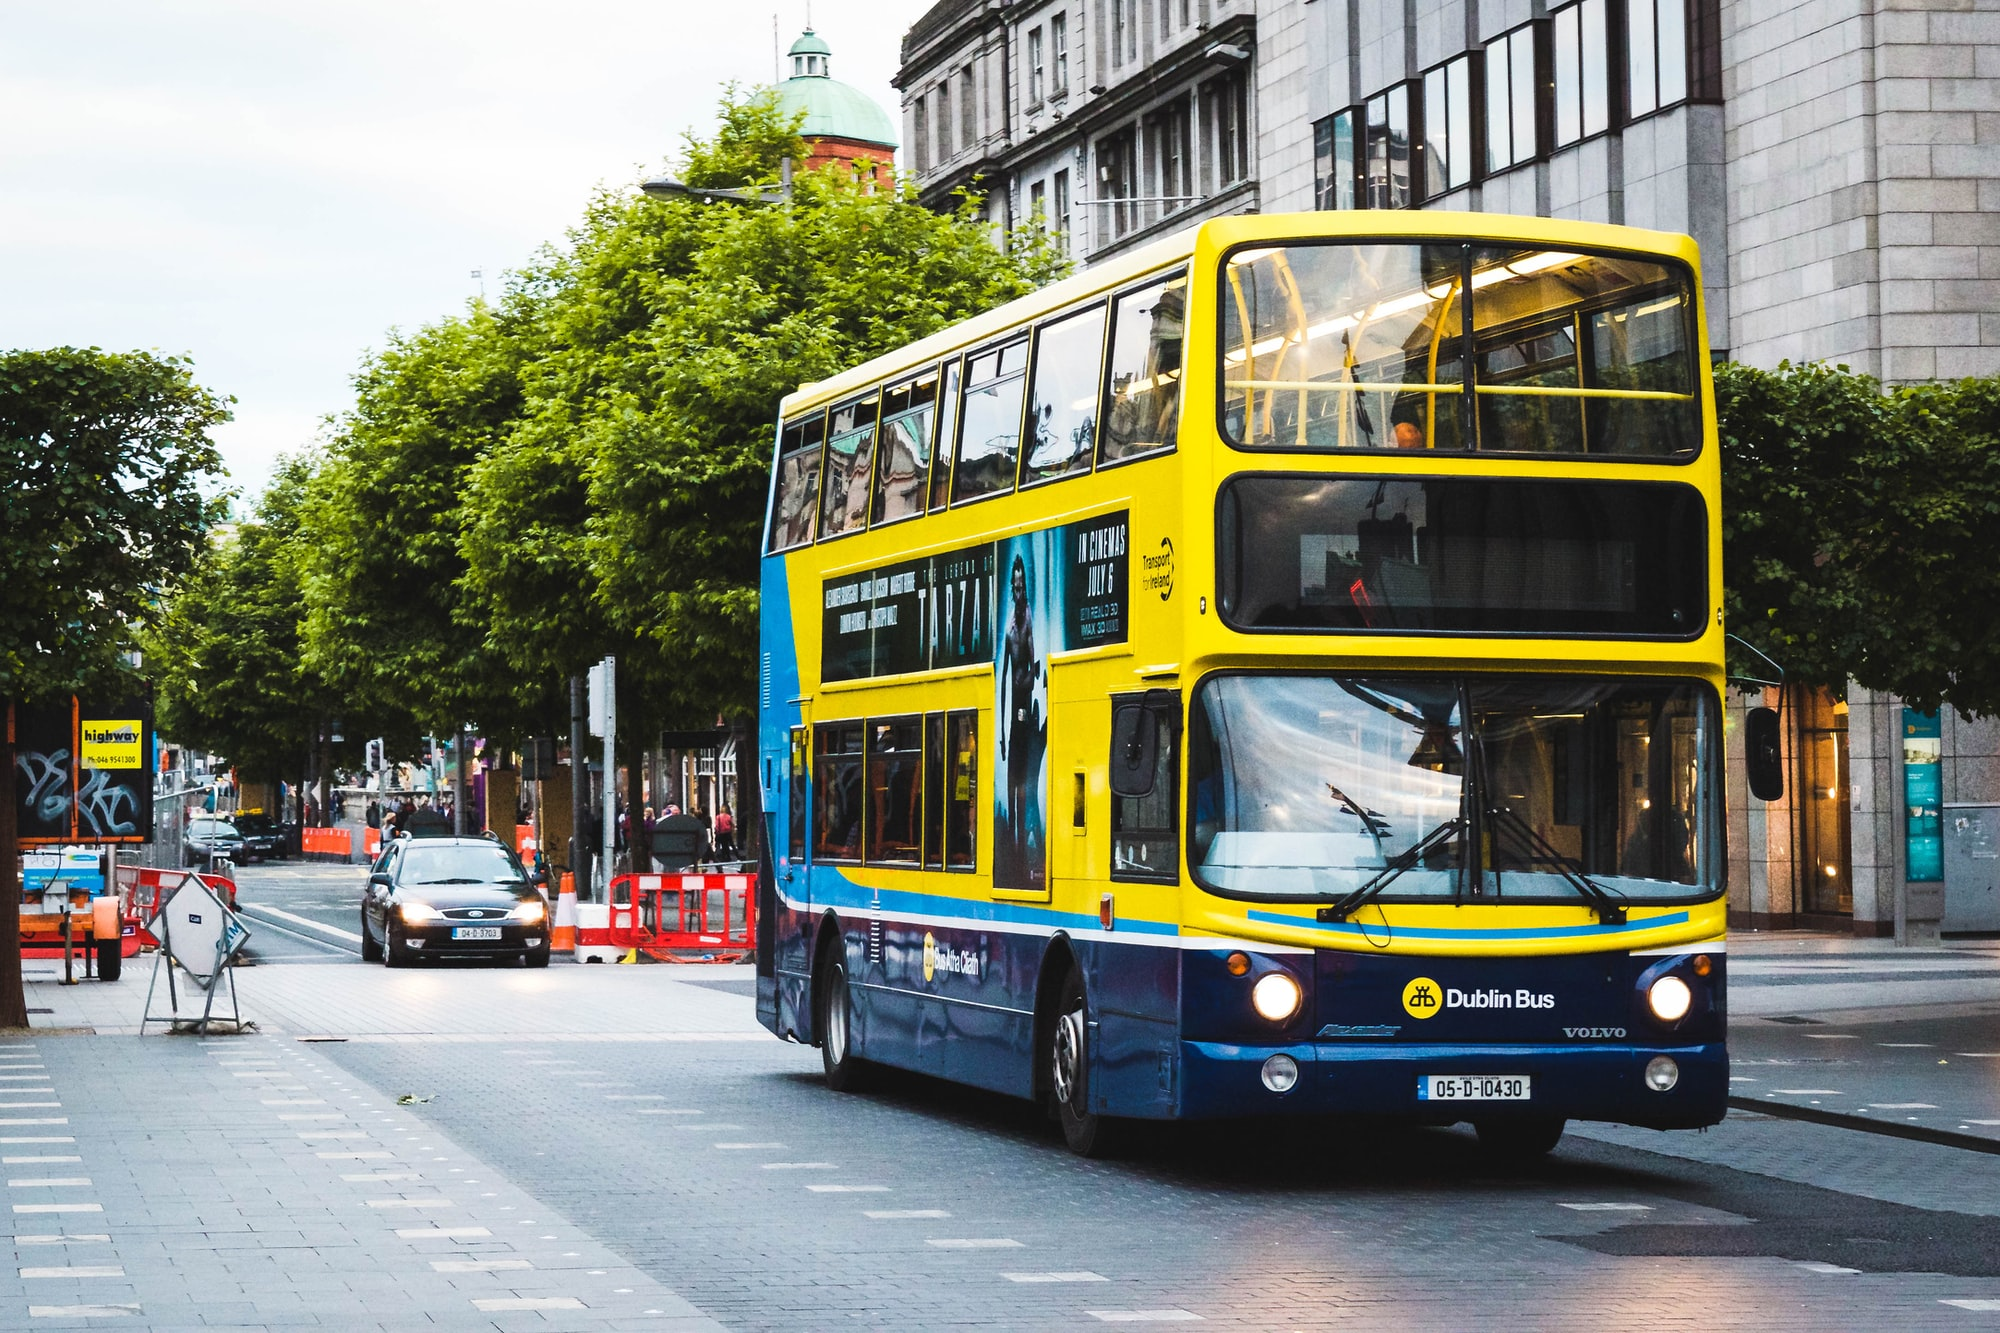 You see them everywhere in Dublin - The Dublin Bus. Yes, you might be thinking that is a London Bus in an other color, and that's right,  but they shape the surroundings of Dublin's great city.